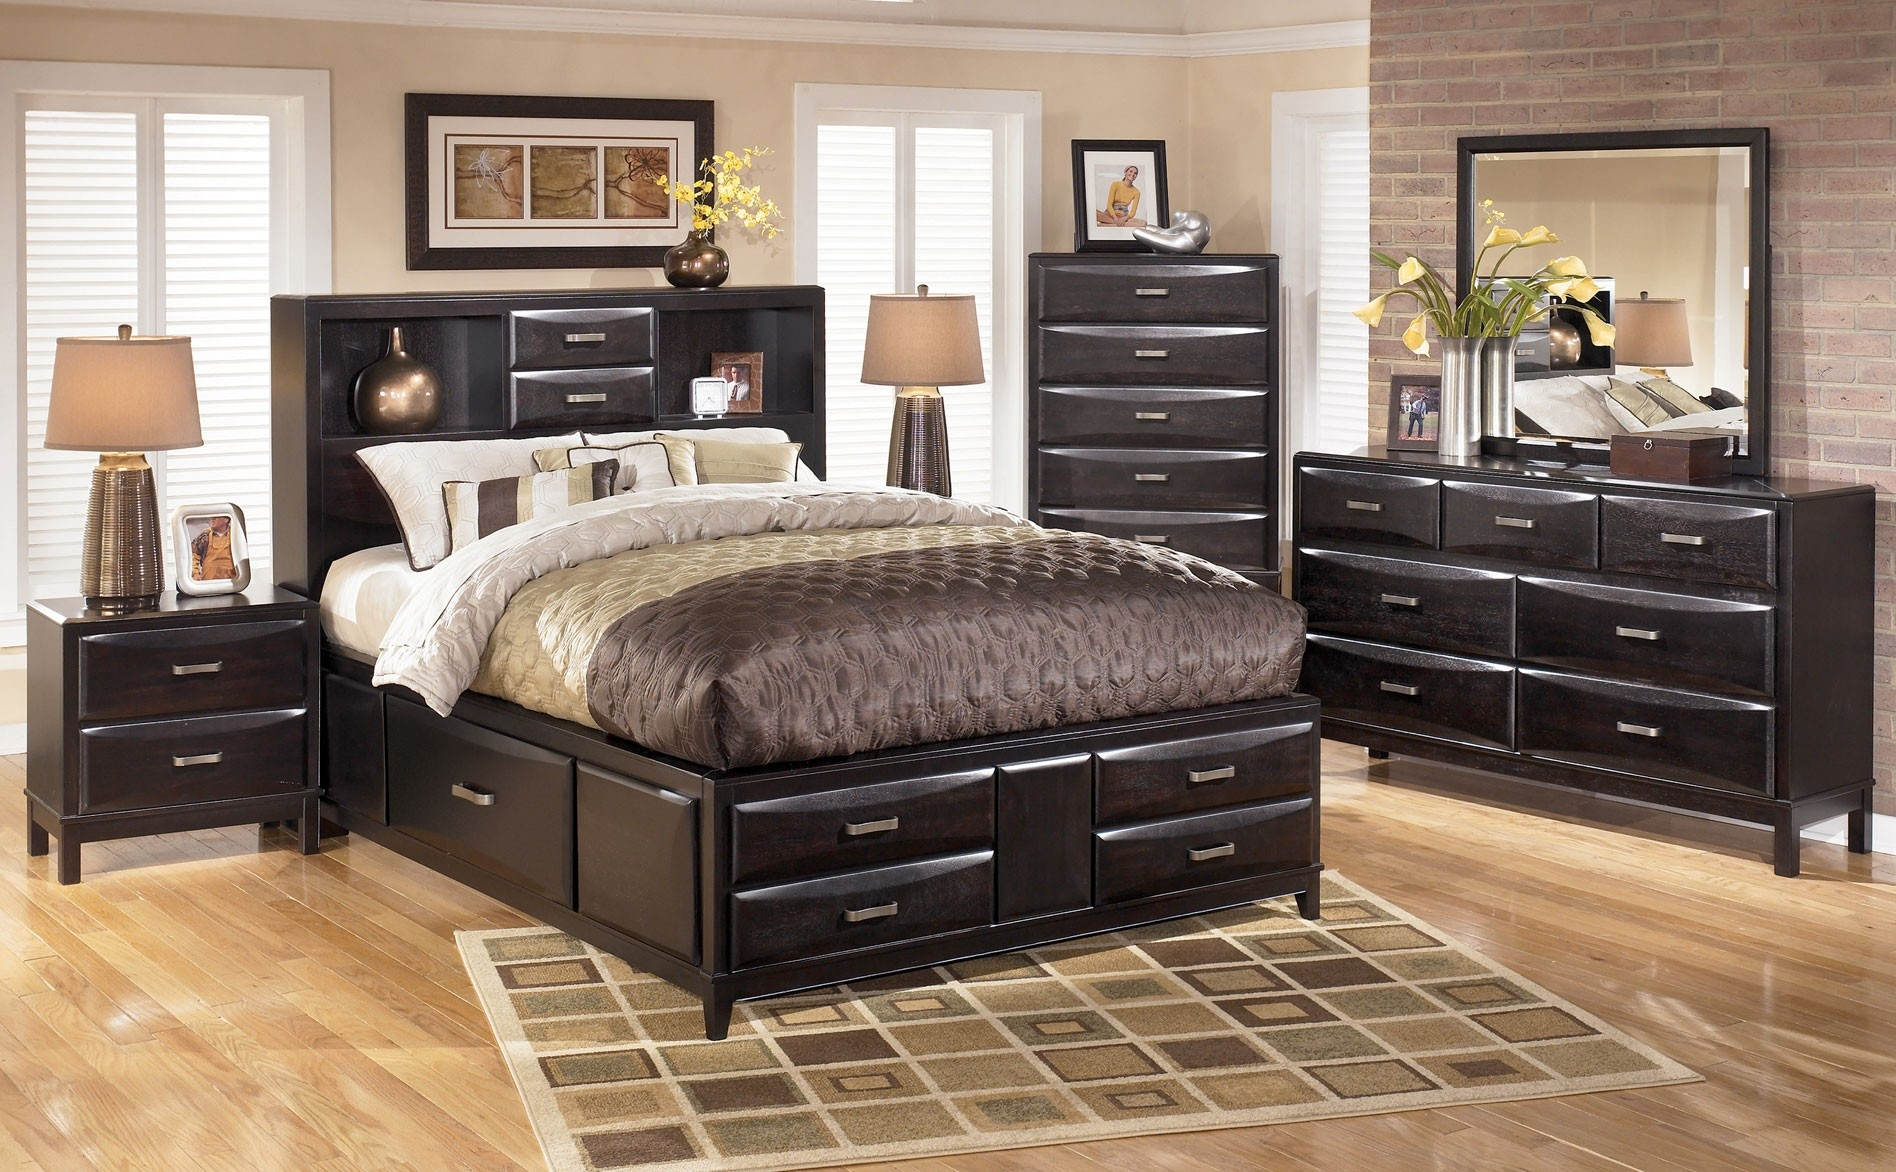 Bedroom Sets Storage Beds